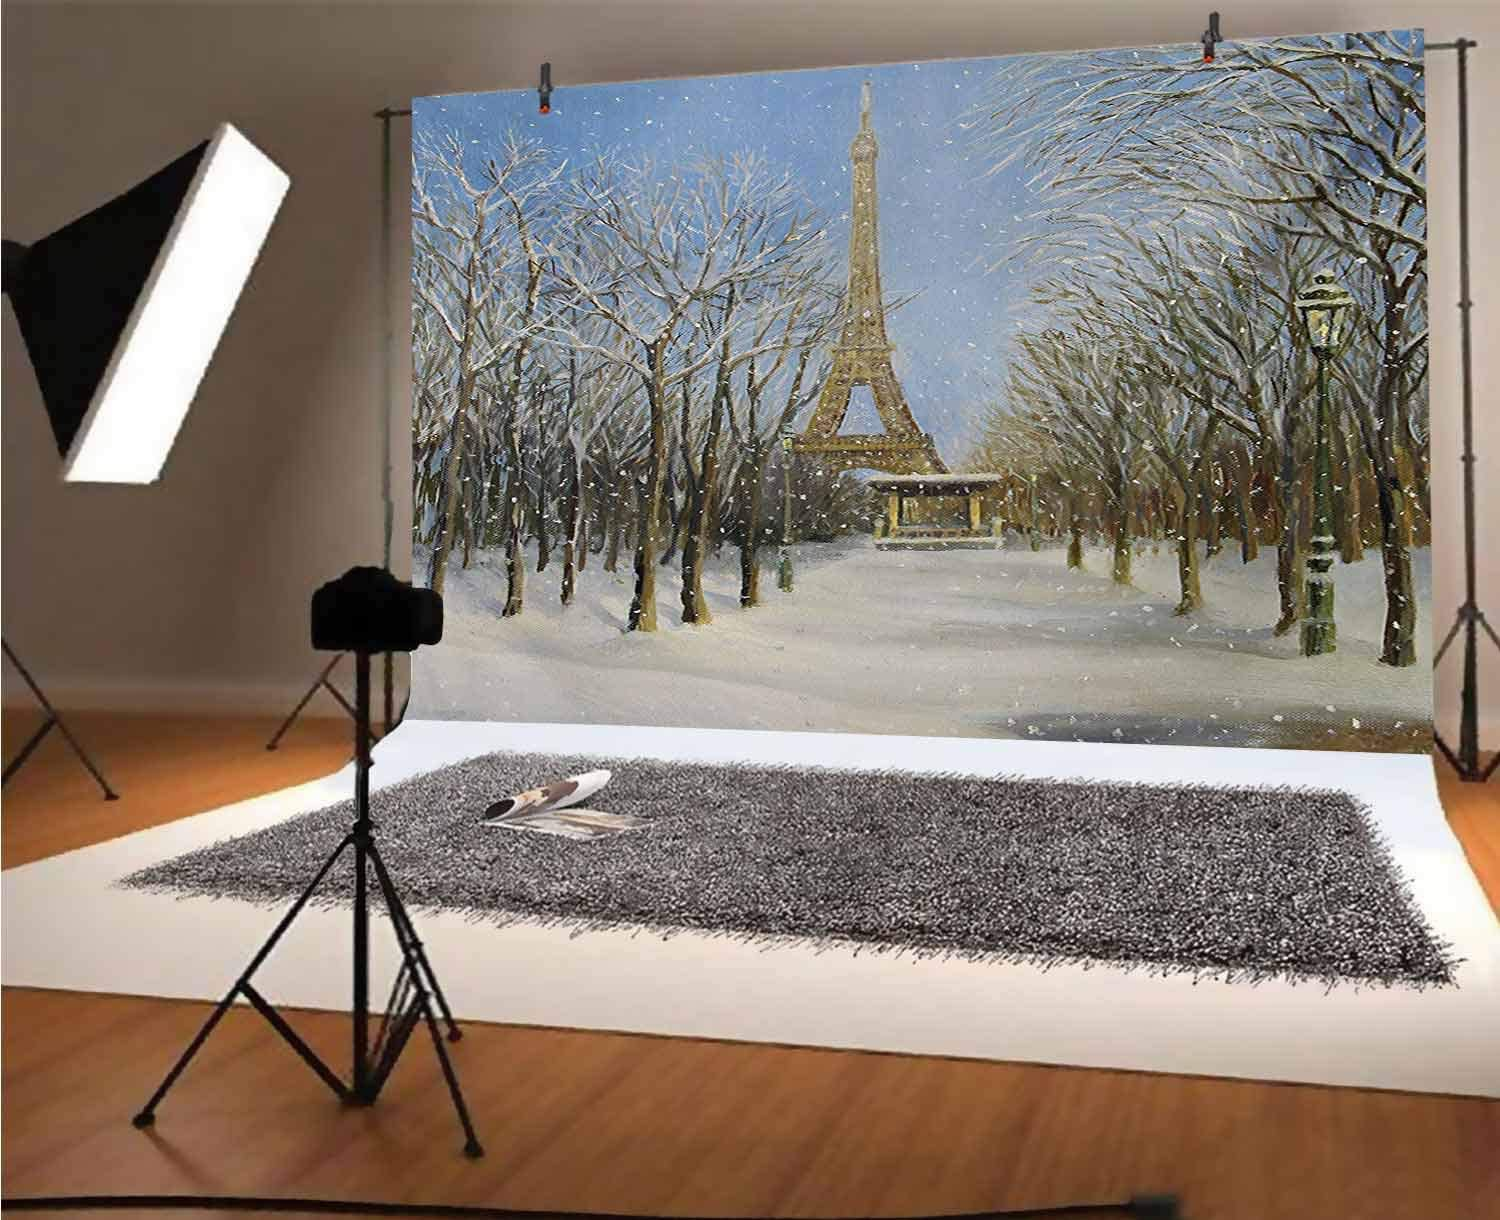 Country 12x10 FT Vinyl Photography Backdrop,Winter Scene of Historical Eiffel Tower in Paris Snowy City Europe Urban View Background for Photo Backdrop Baby Newborn Photo Studio Props